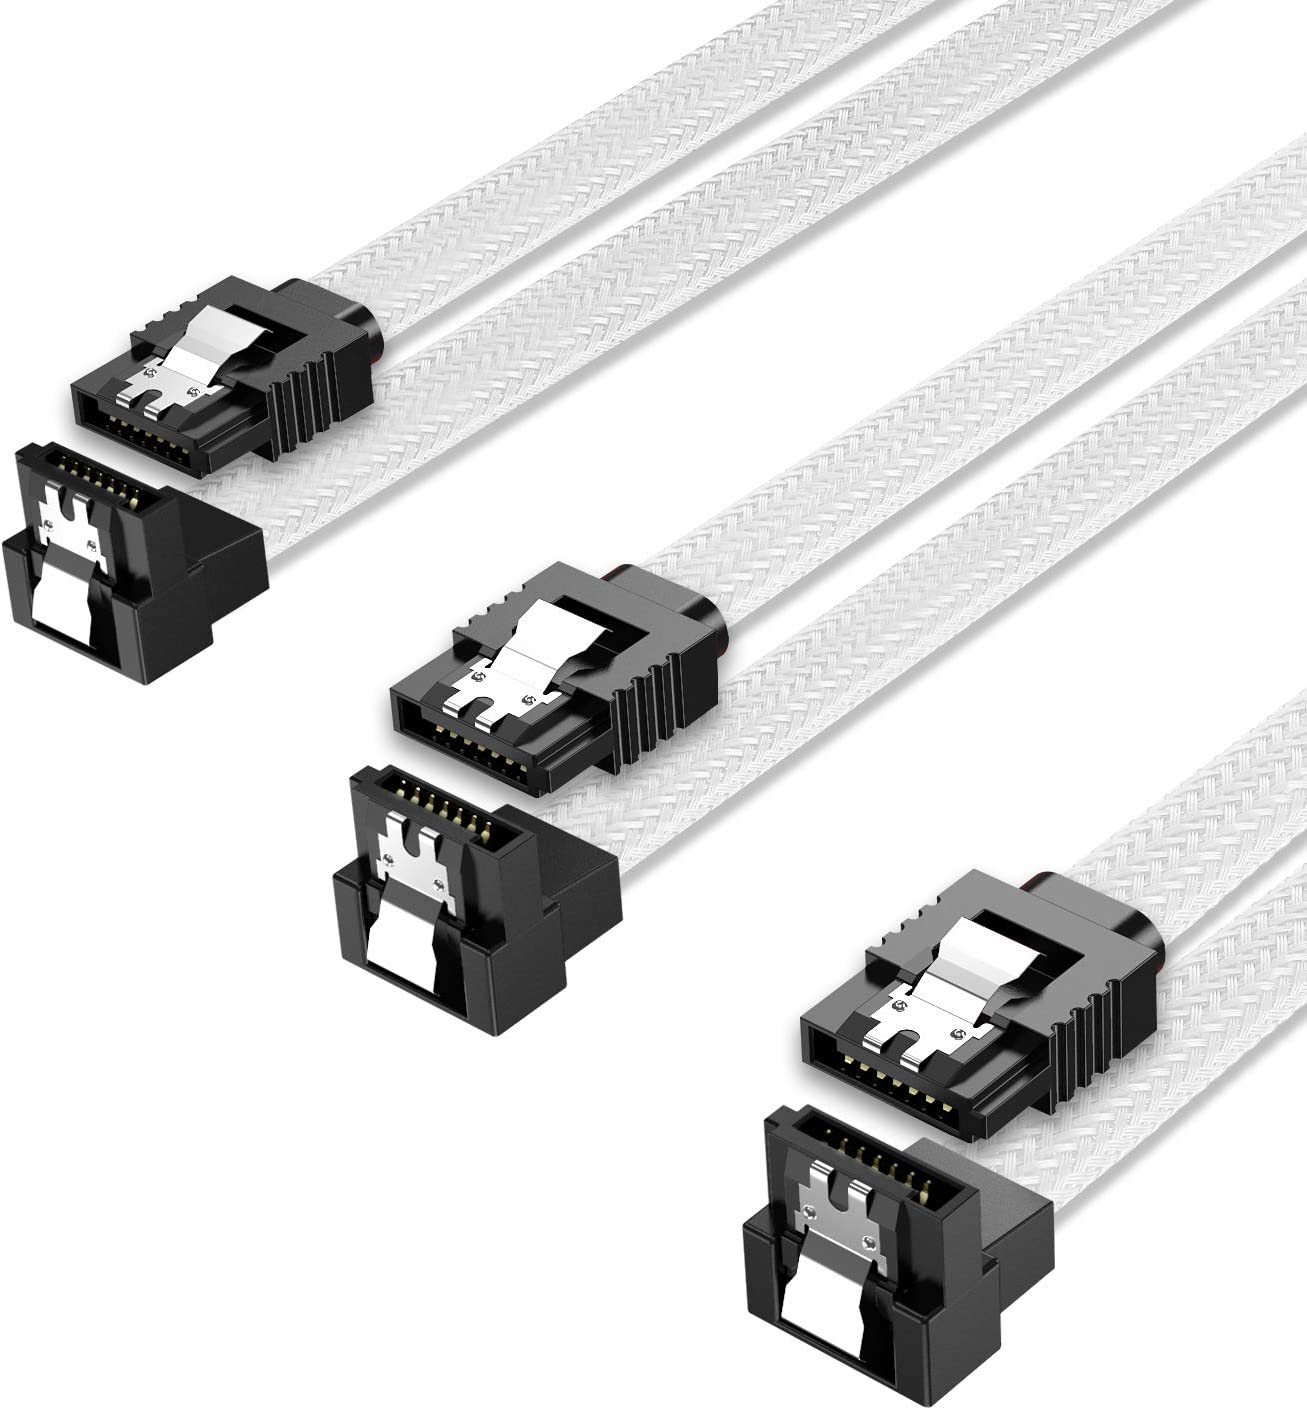 QIVYNSRY 3PACK SATA Cable III 3 Pack 90 Degree Straight to Right Angle 6Gbps HDD SDD SATA Data Cable with Locking Latch 50cm 18 Inch for SATA HDD, SSD, CD Driver, CD Writer, White